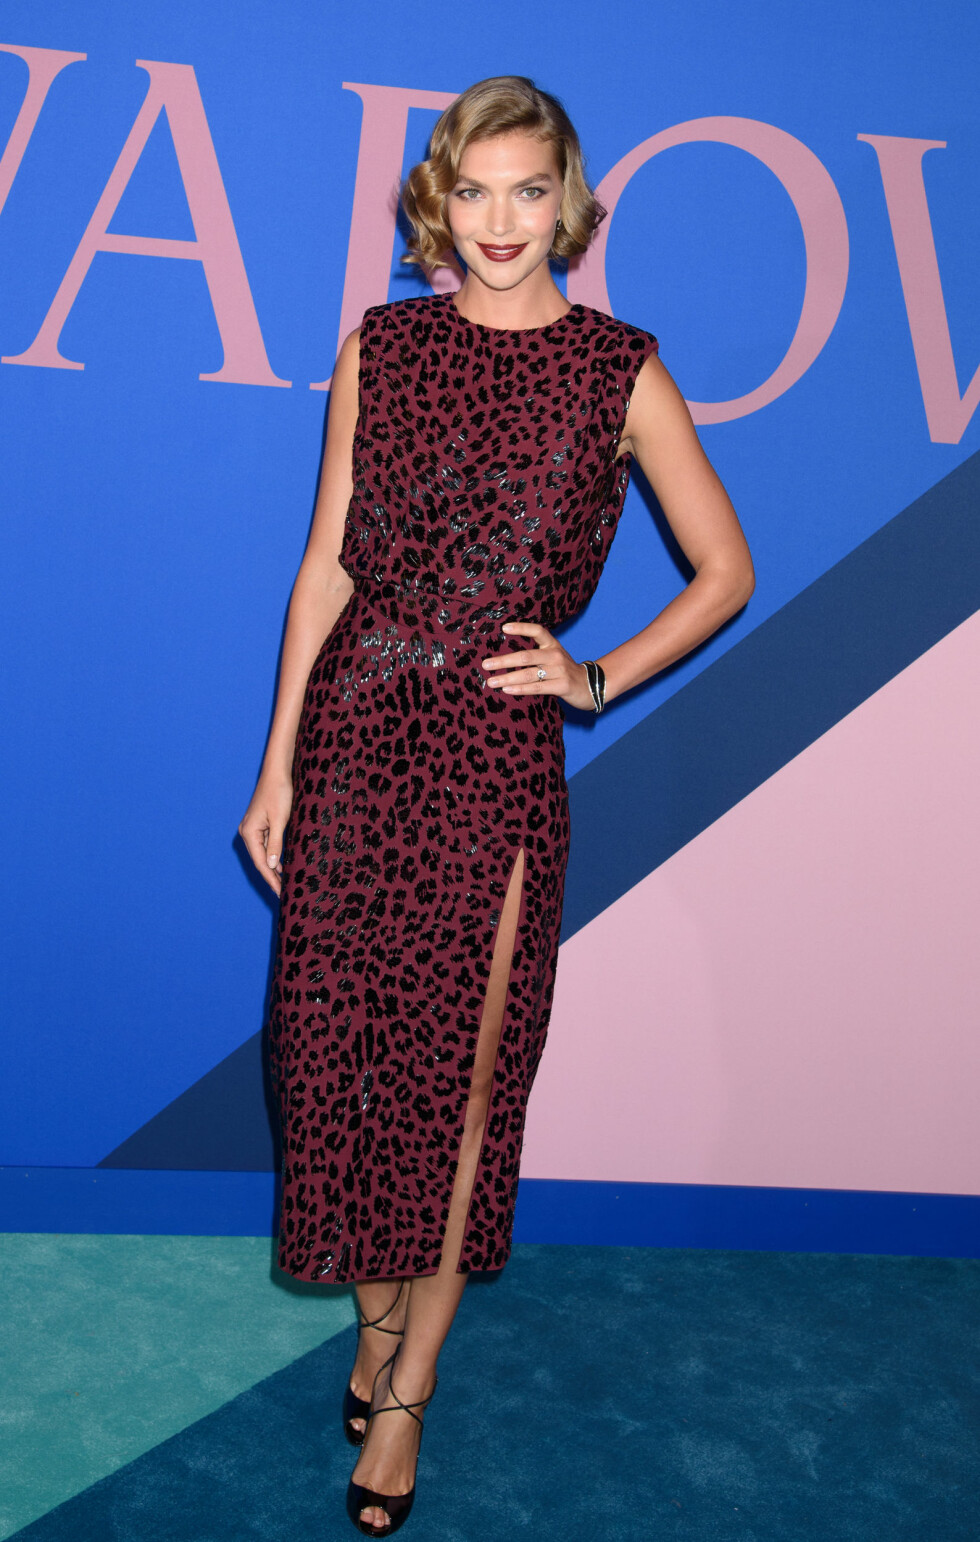 CFDA FASHION AWARDS: Arizona Muse Foto: Splash News